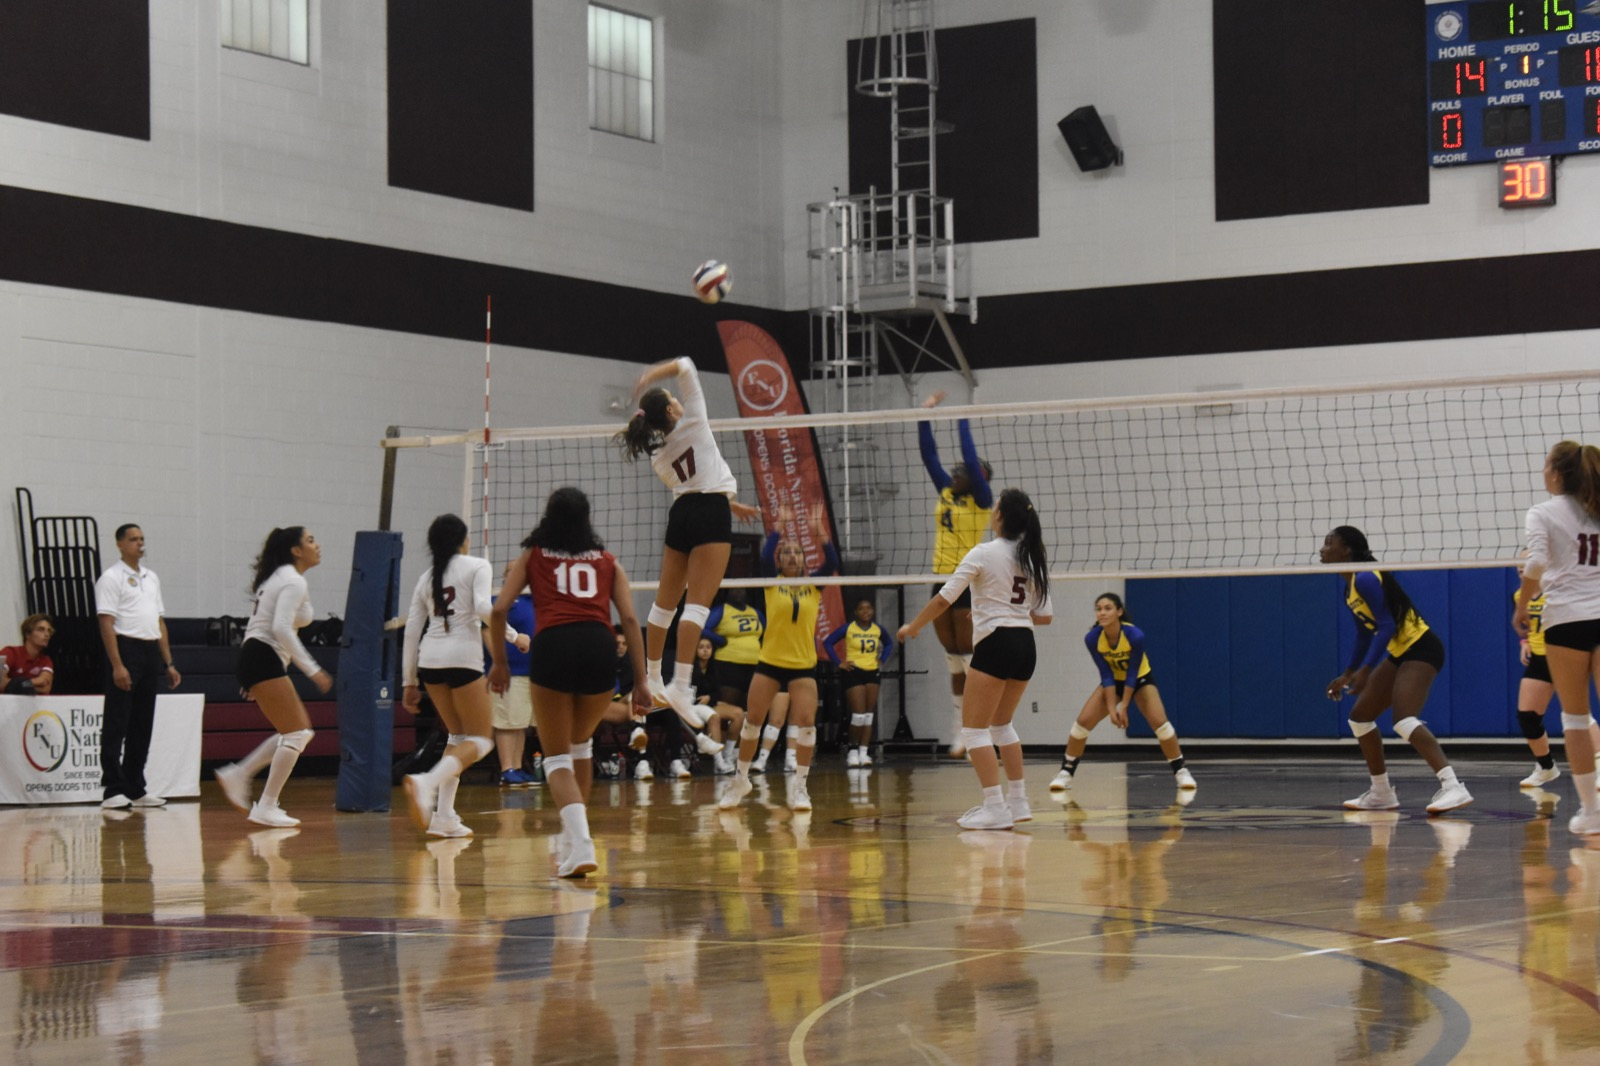 FNU Volleyball team playing